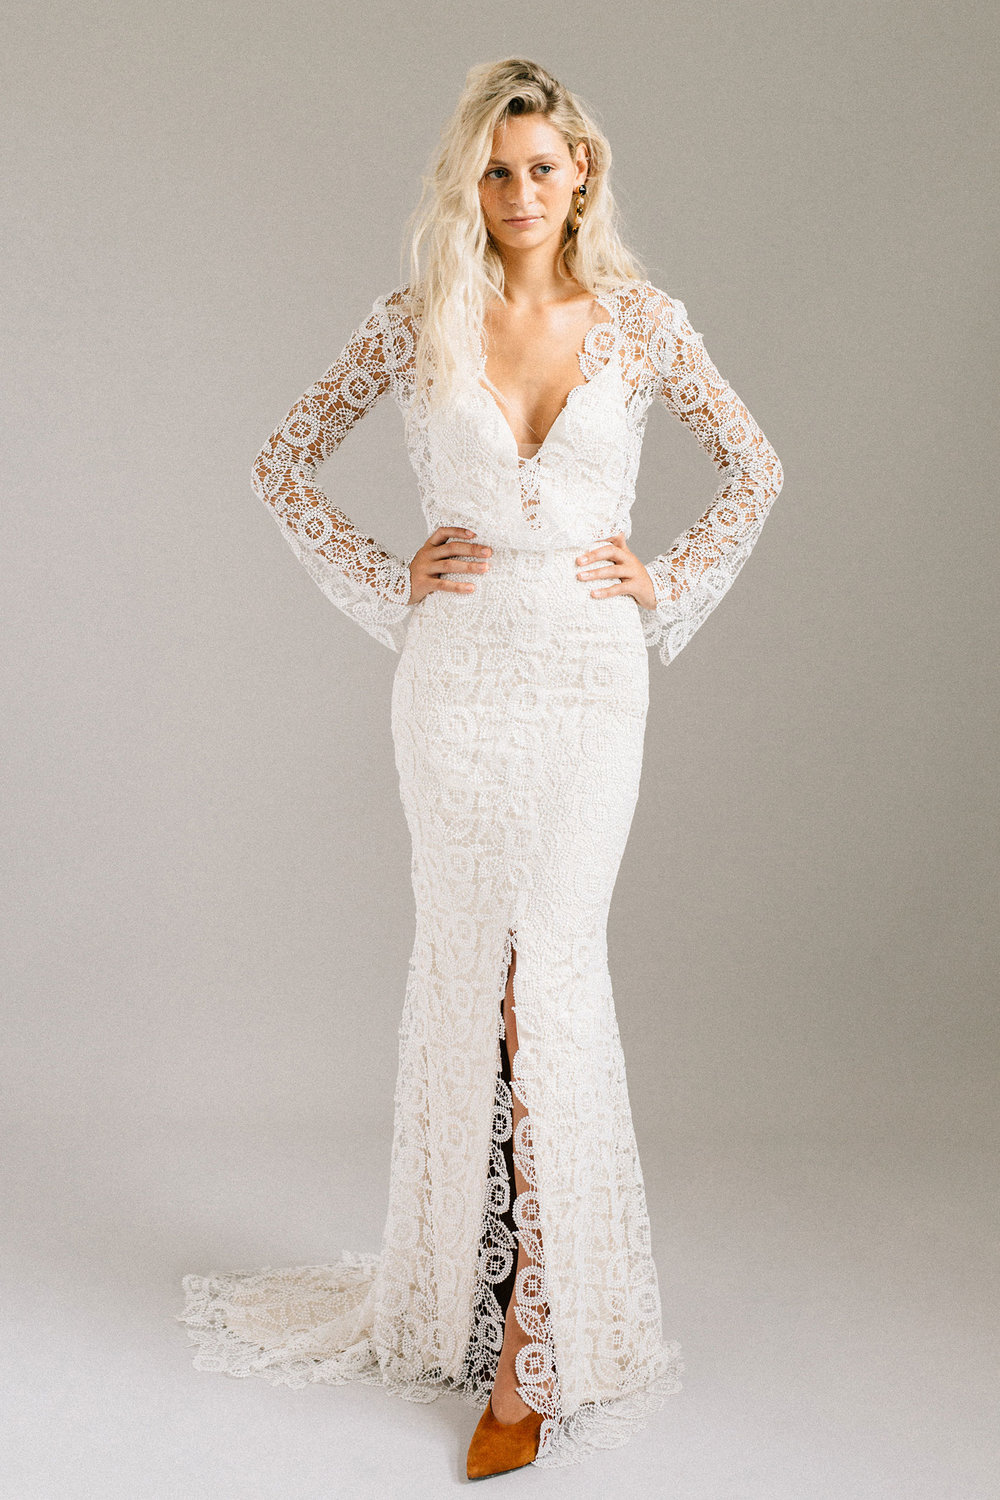 ottawa-wedding-dress-westboro-bridal-store-modern-bride-boutique-revelle-laudae-Halsey-PS2.jpg